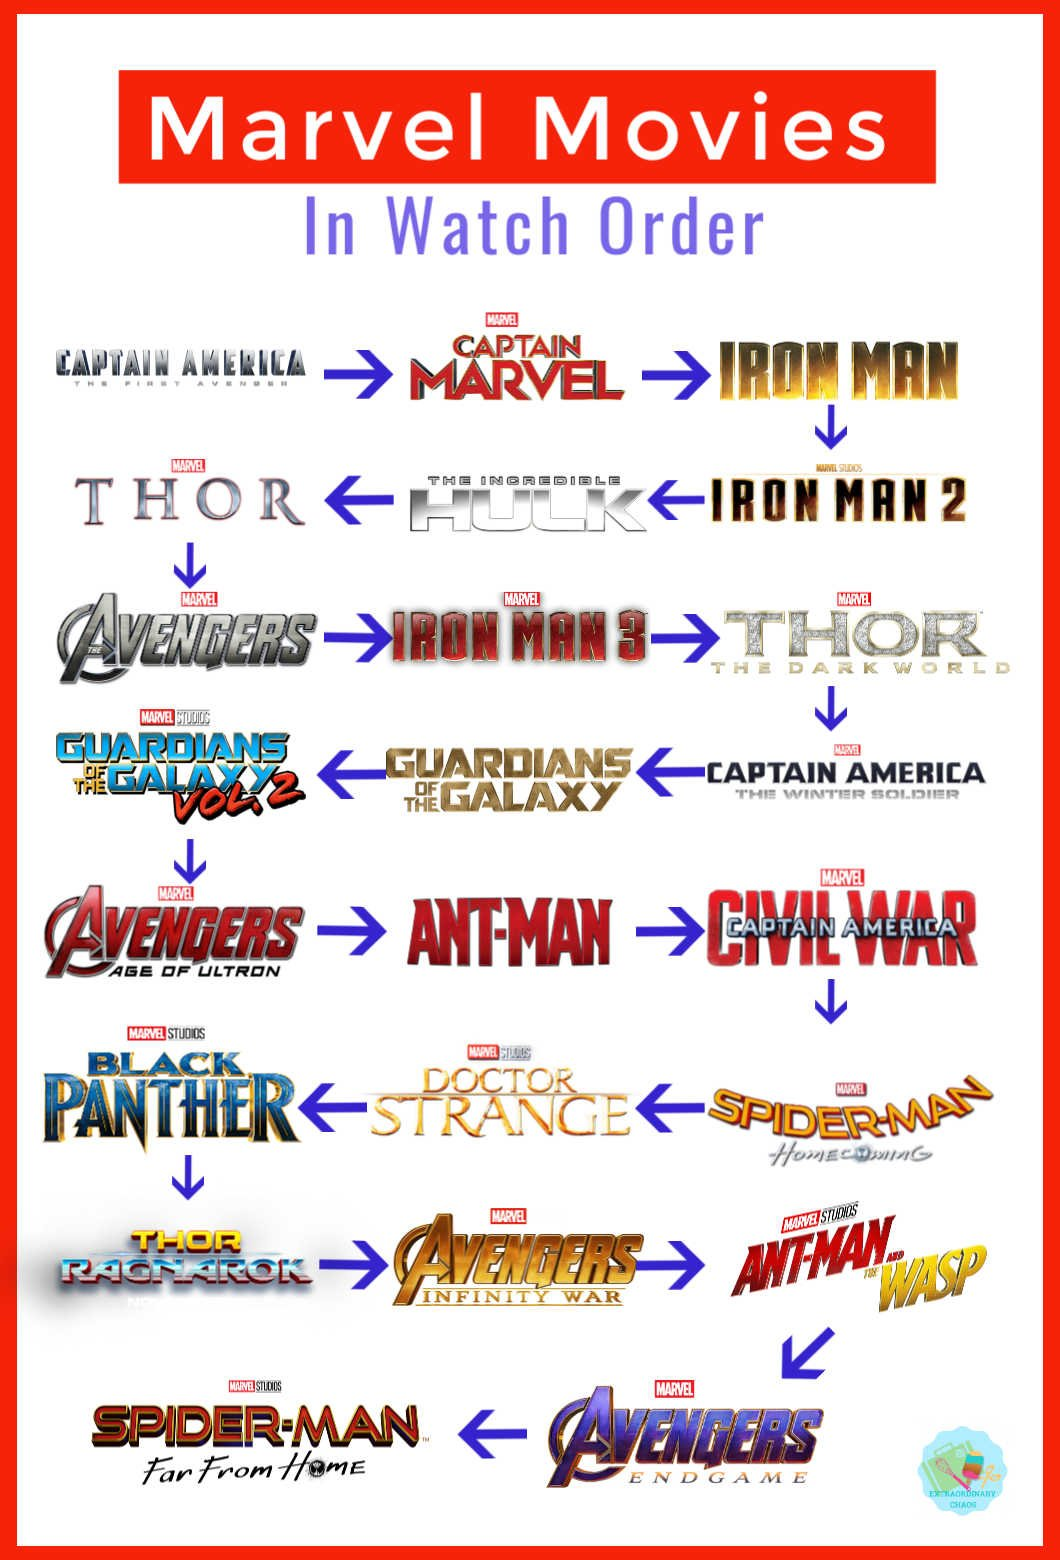 Infographic for you to pin or save which will help you keep track of the order of the Marvel Movies